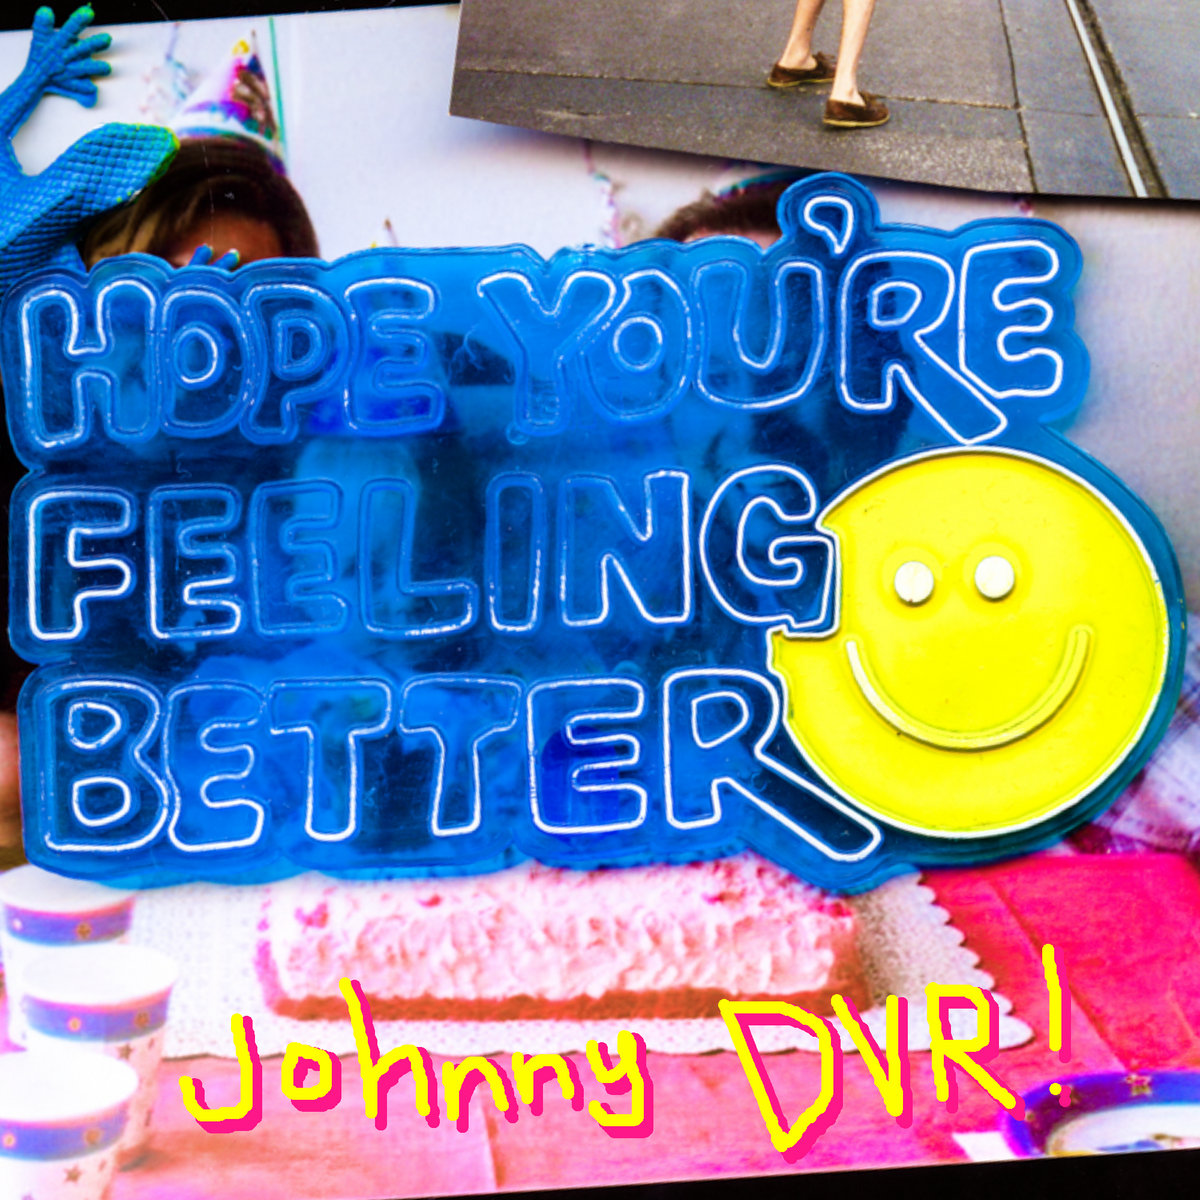 Hope Youre Feeling Better Johnny Dvr